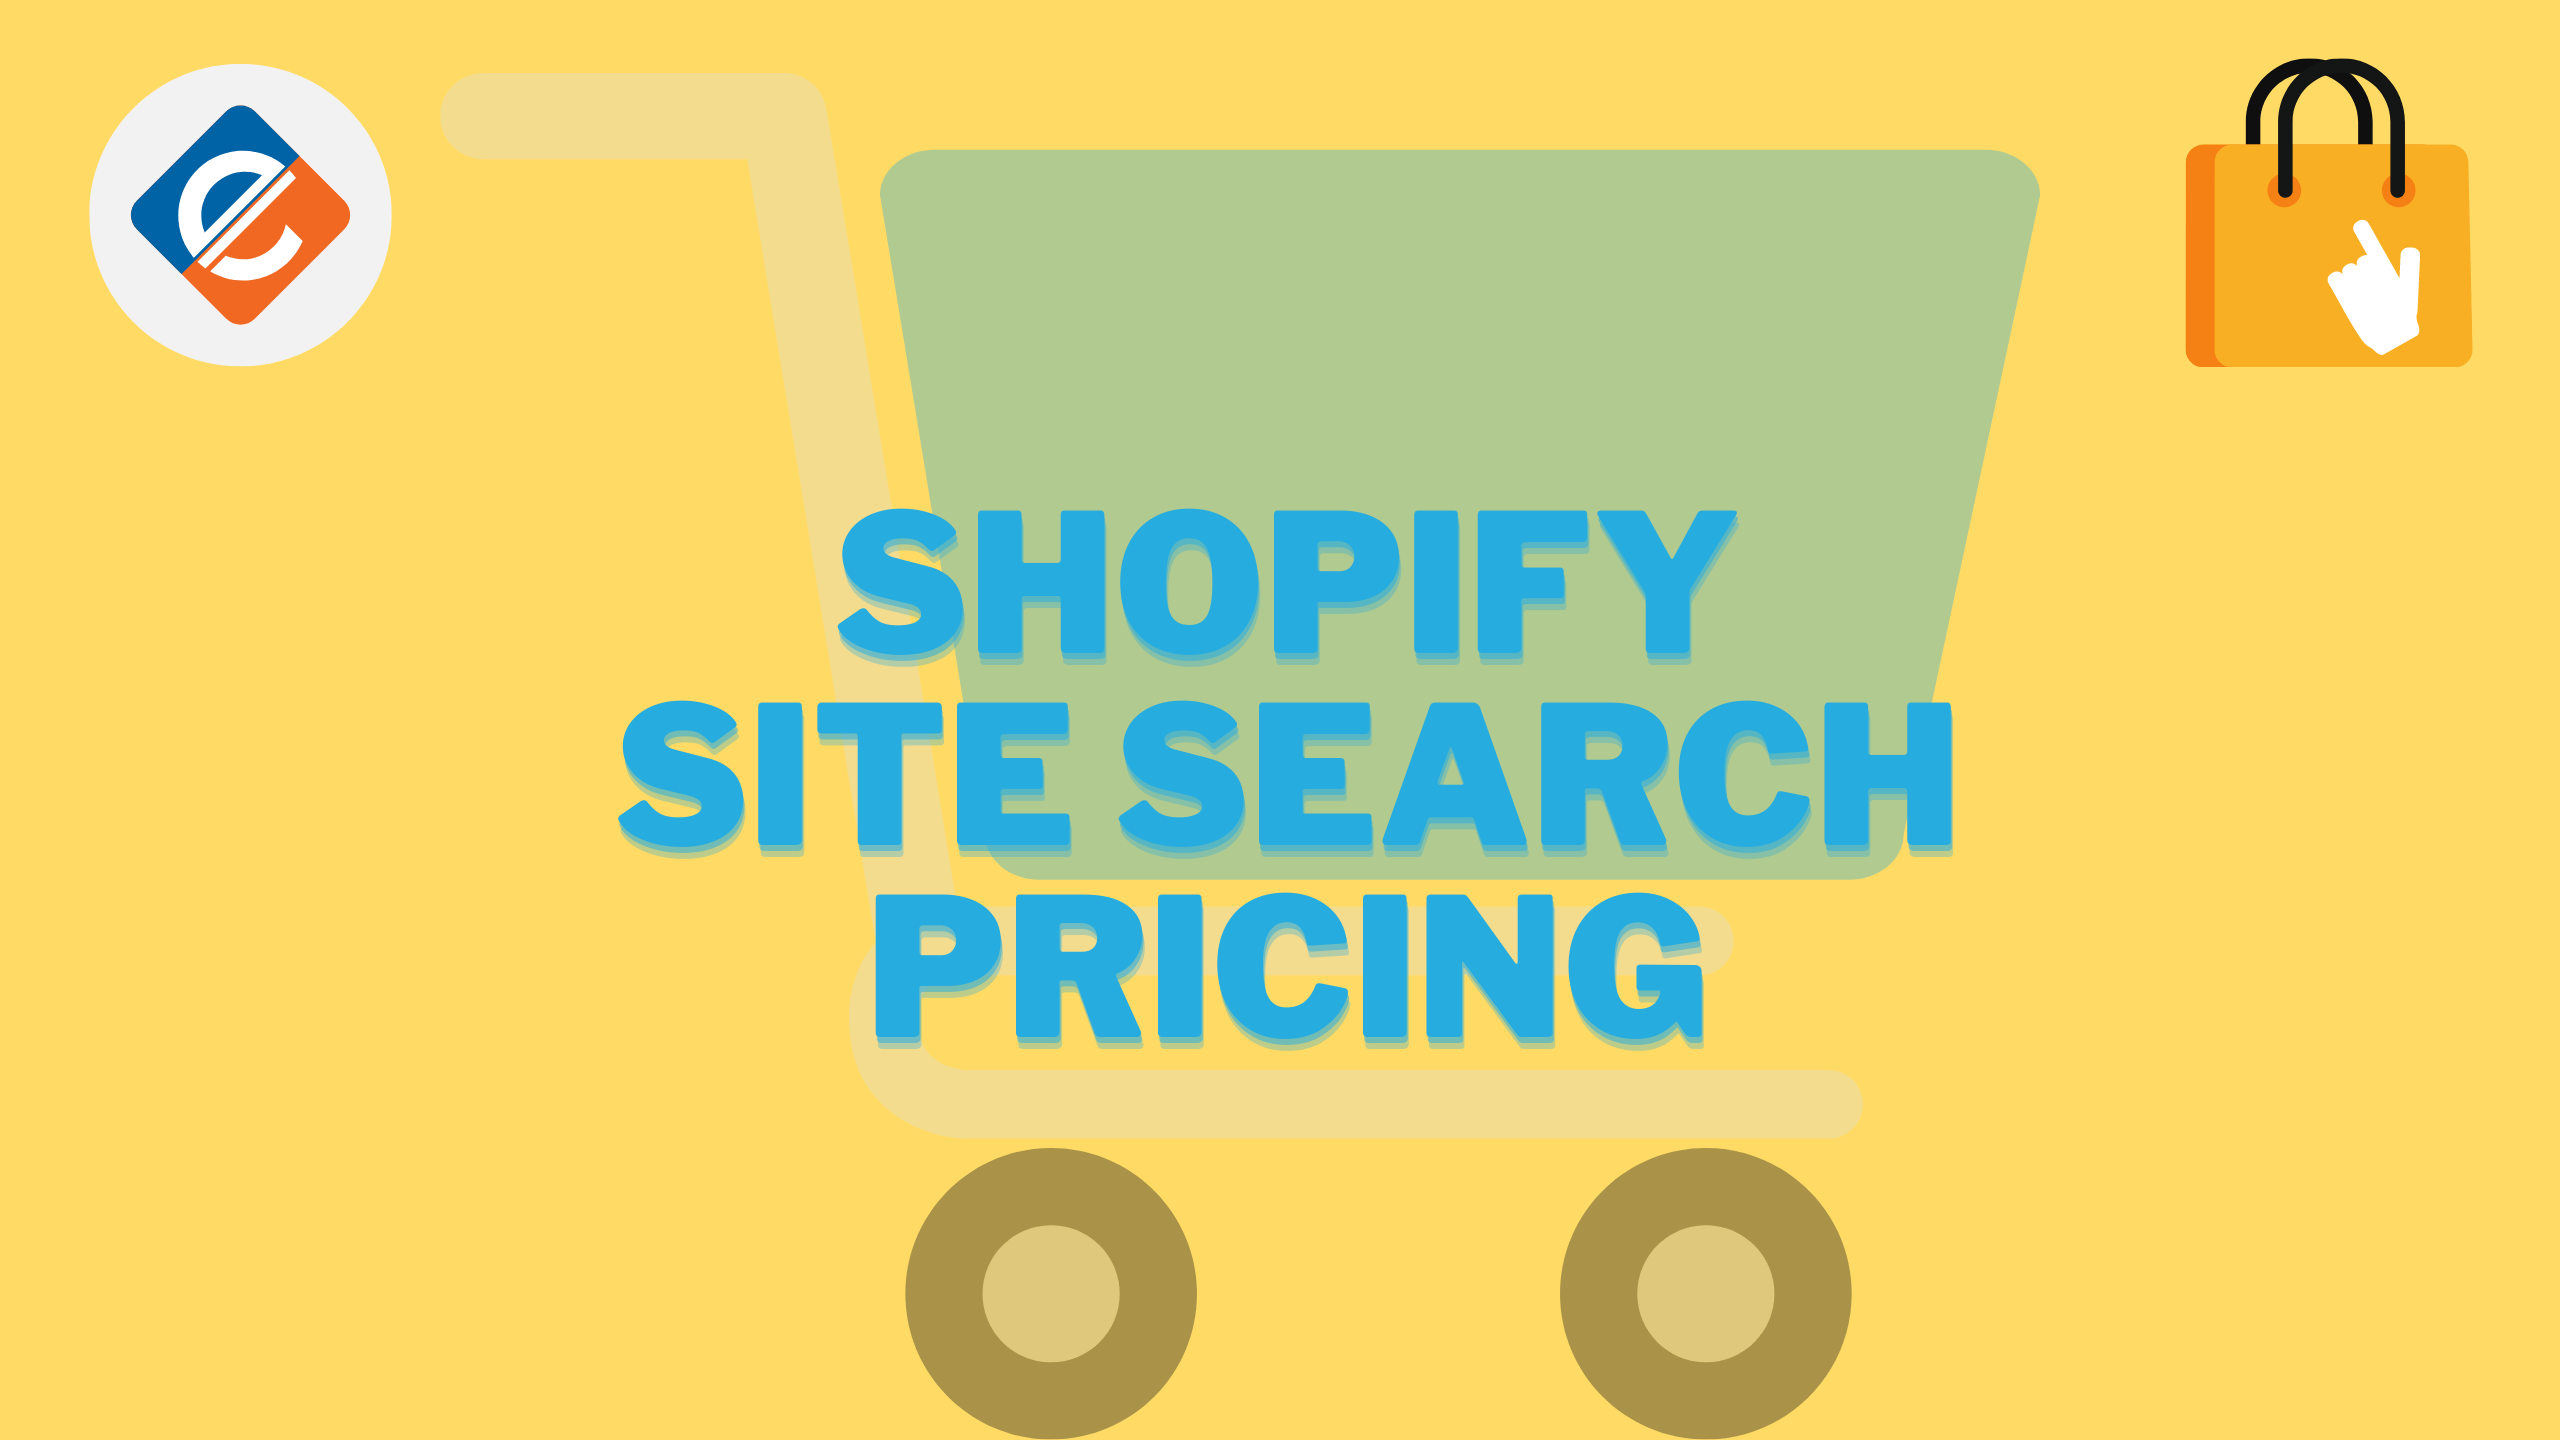 Shopify Site Search Pricing